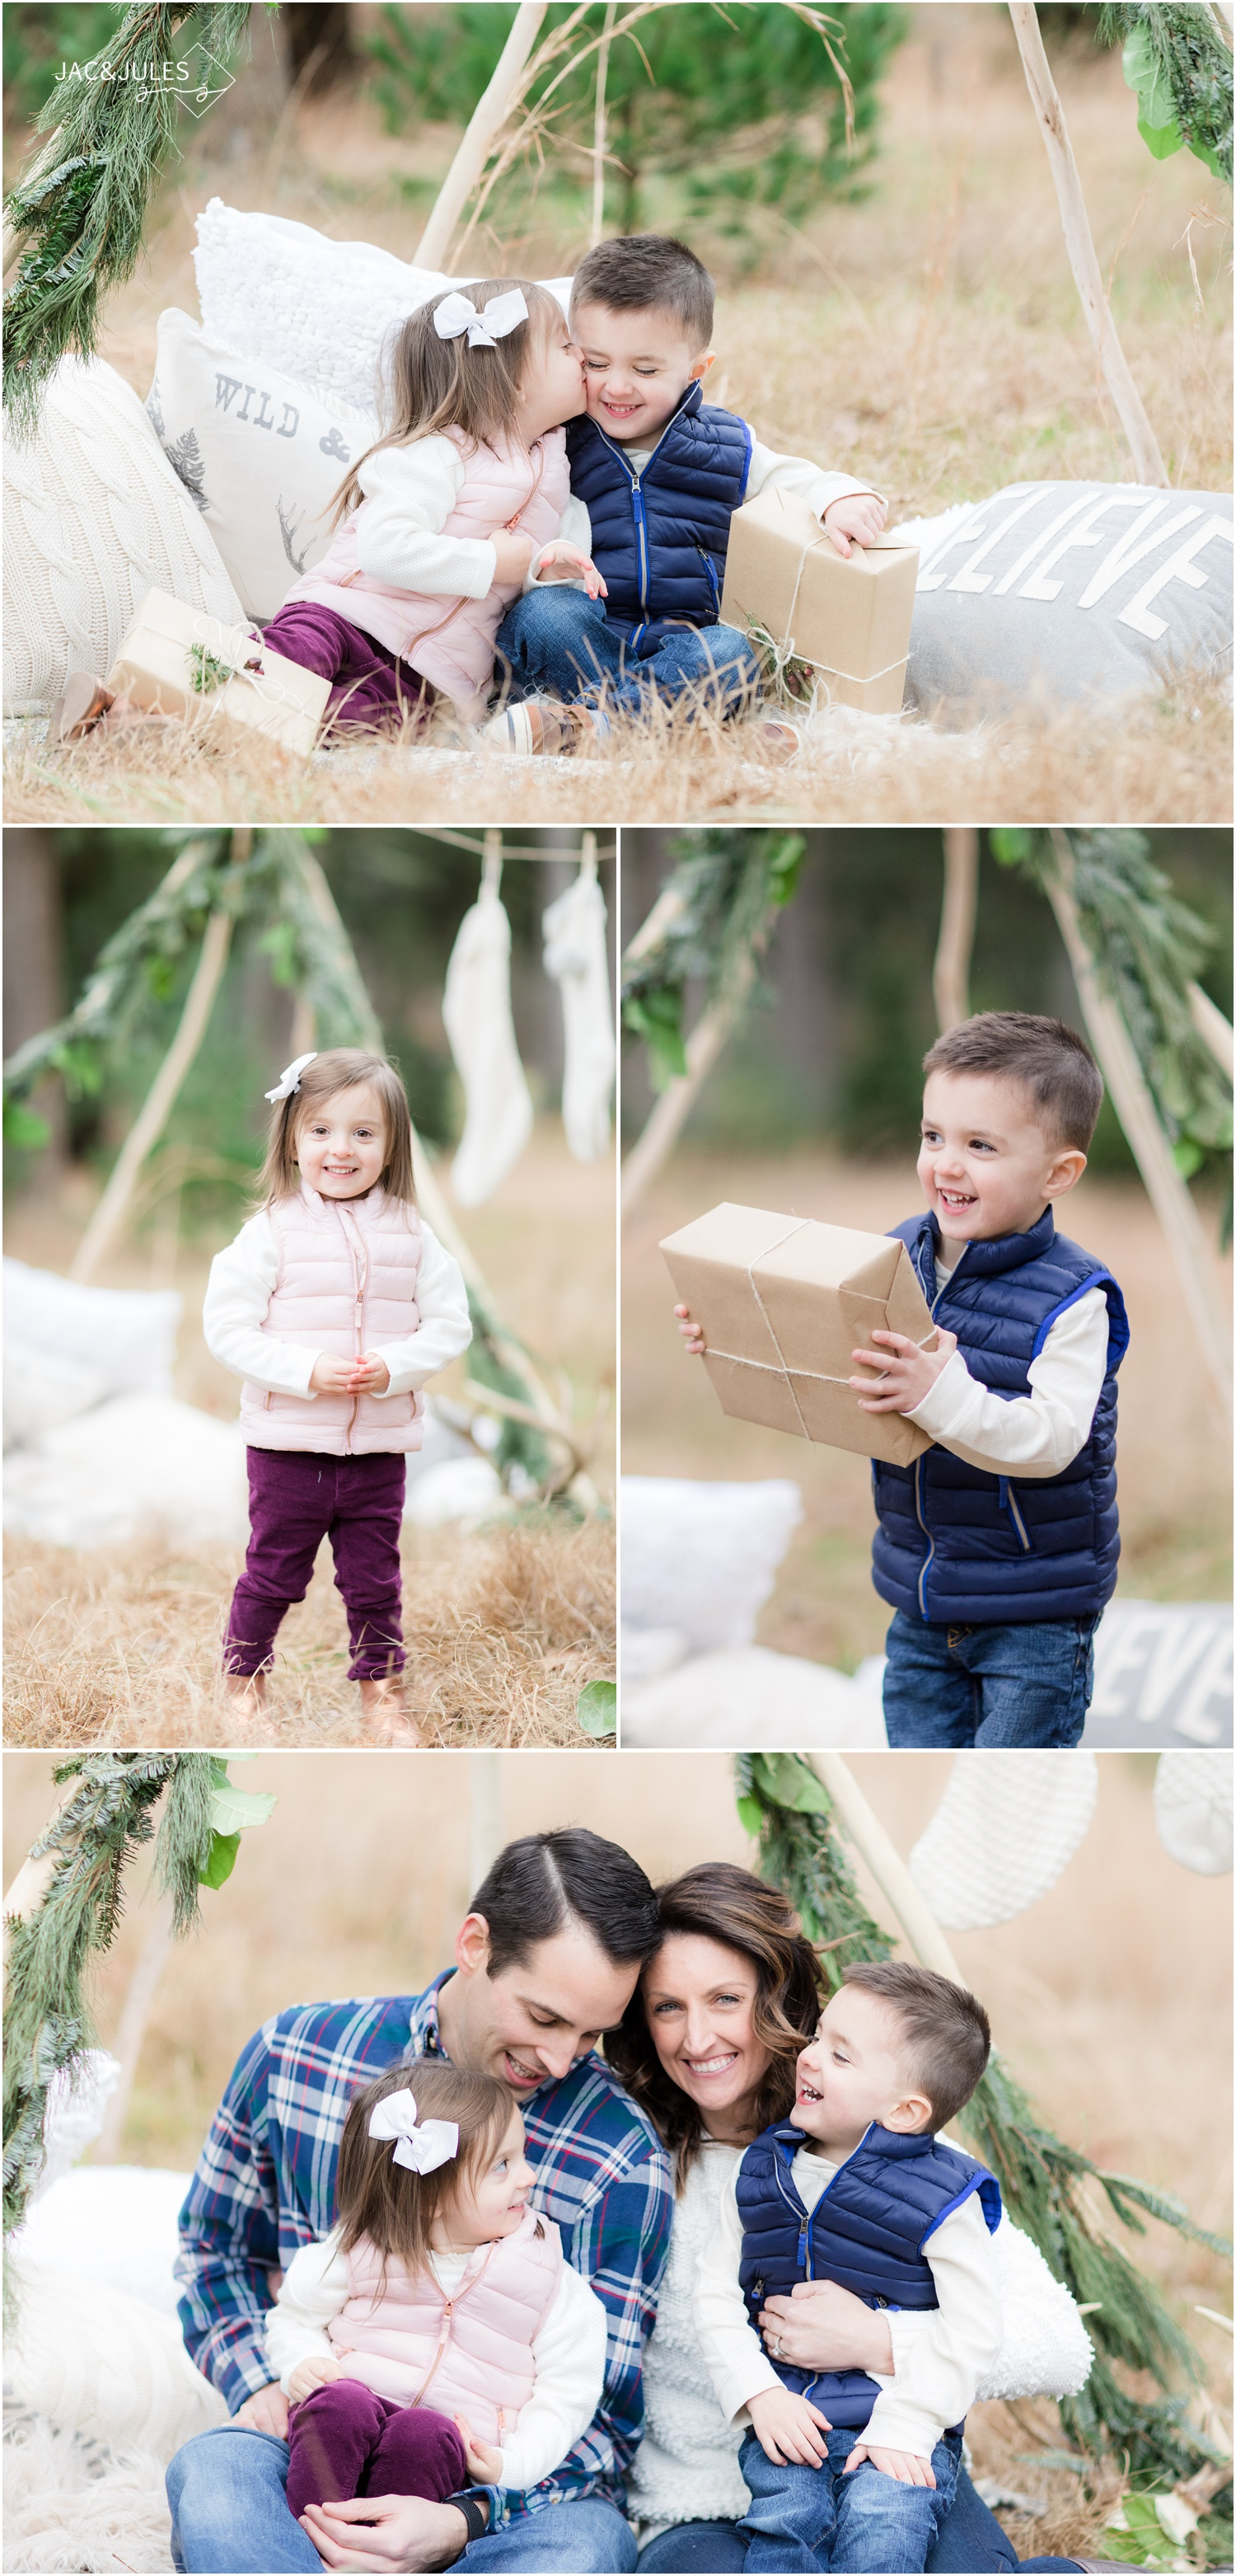 casual family christmas photos using a teepee with holiday decor at a tree farm in Ocean County Park in NJ.